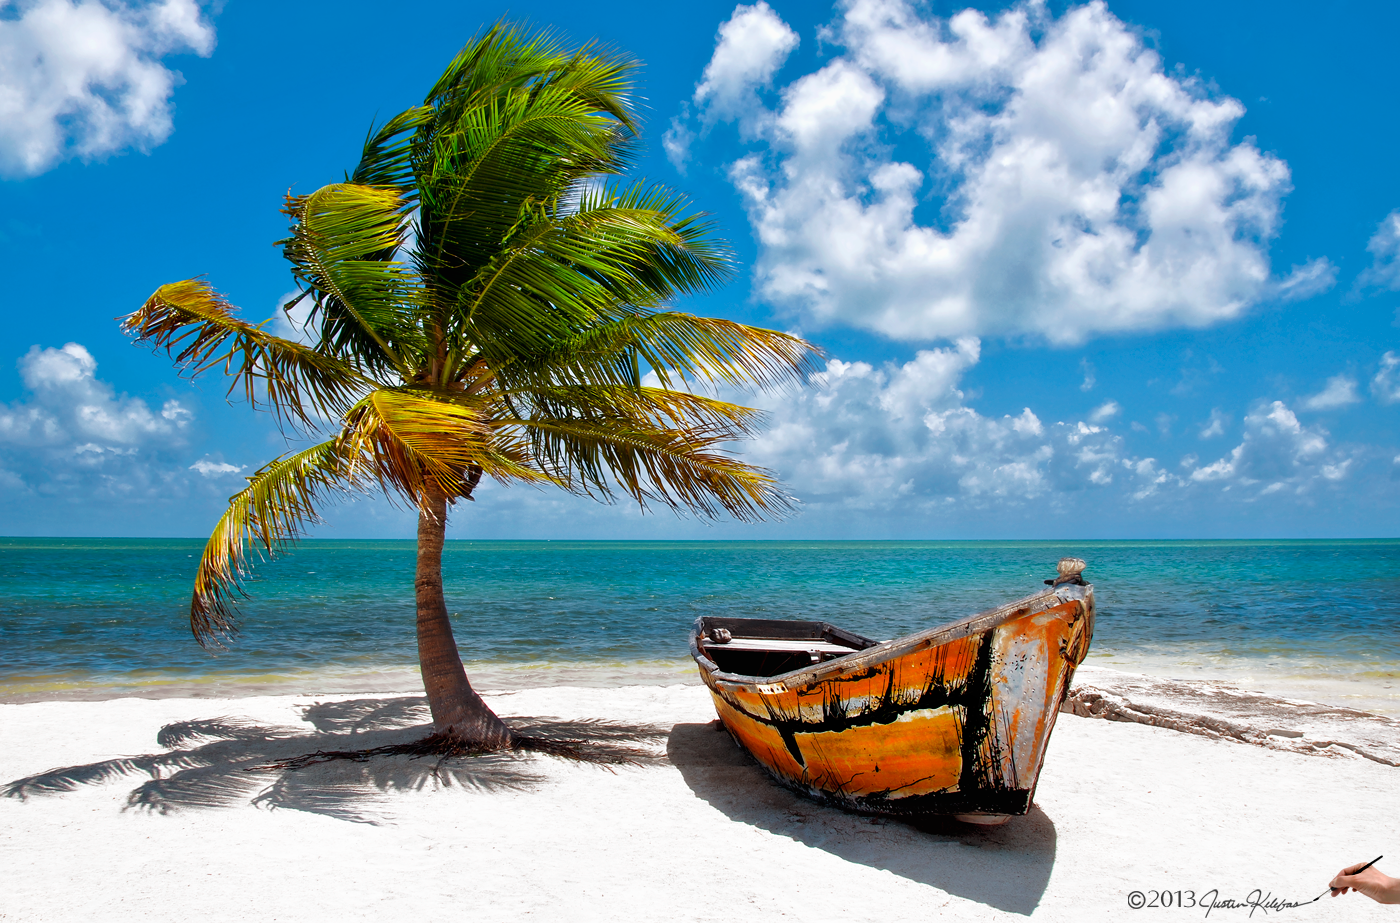 Florida keys beach palm tree coconuts ocean white sand boat justin photograph small boat under palm tree in the florida key islemorada by justin kelefas on voltagebd